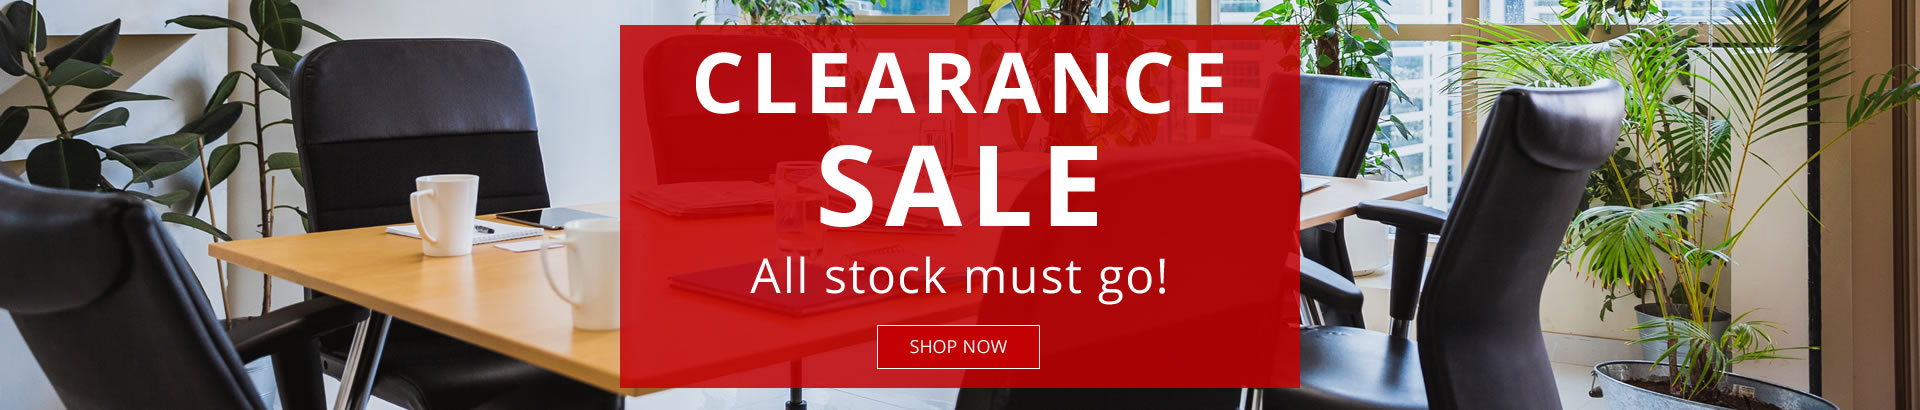 Clearance Sale, all stock must go - shop now